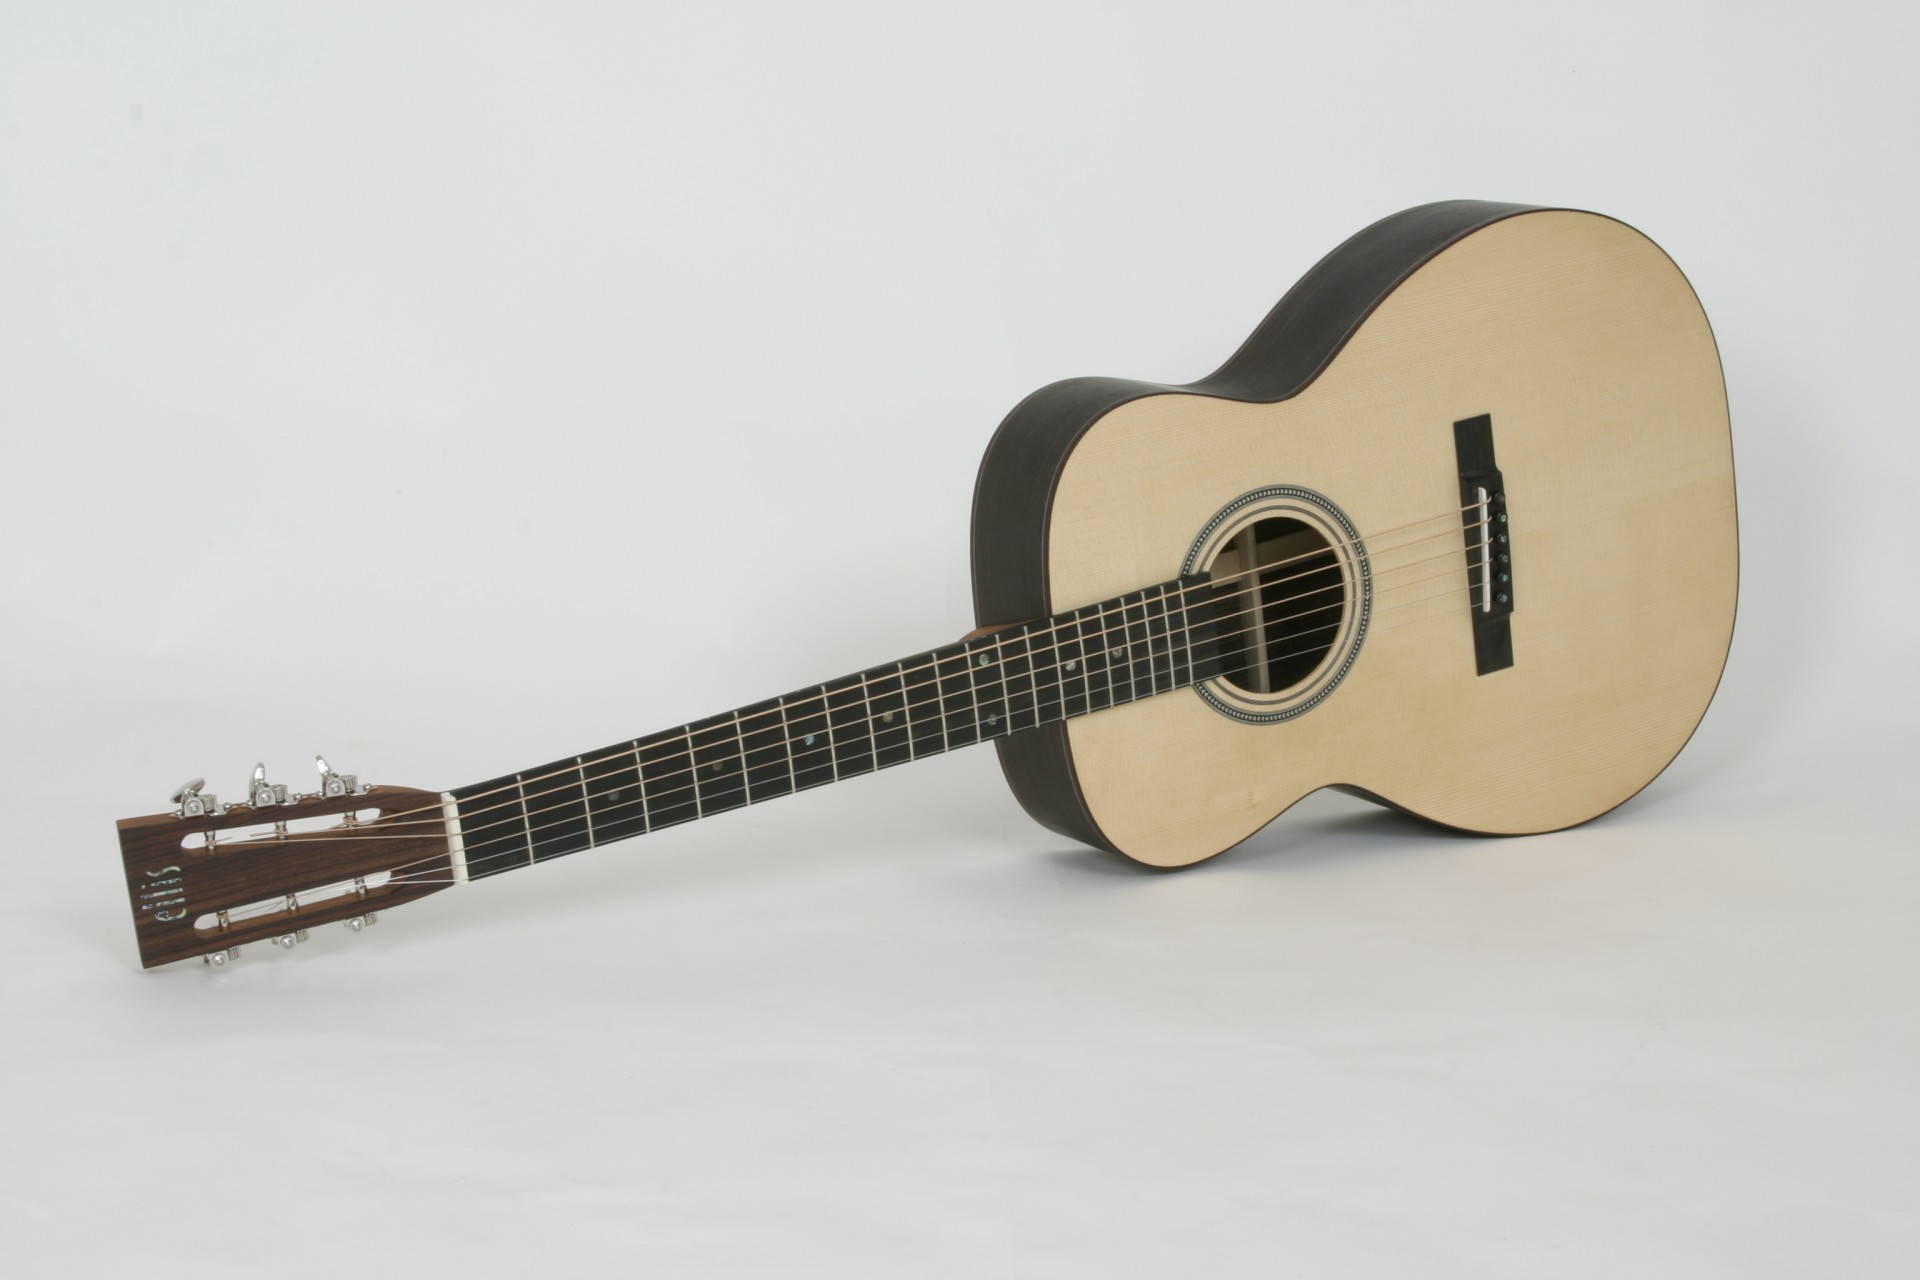 custom left handed acoustic guitar 14 fret